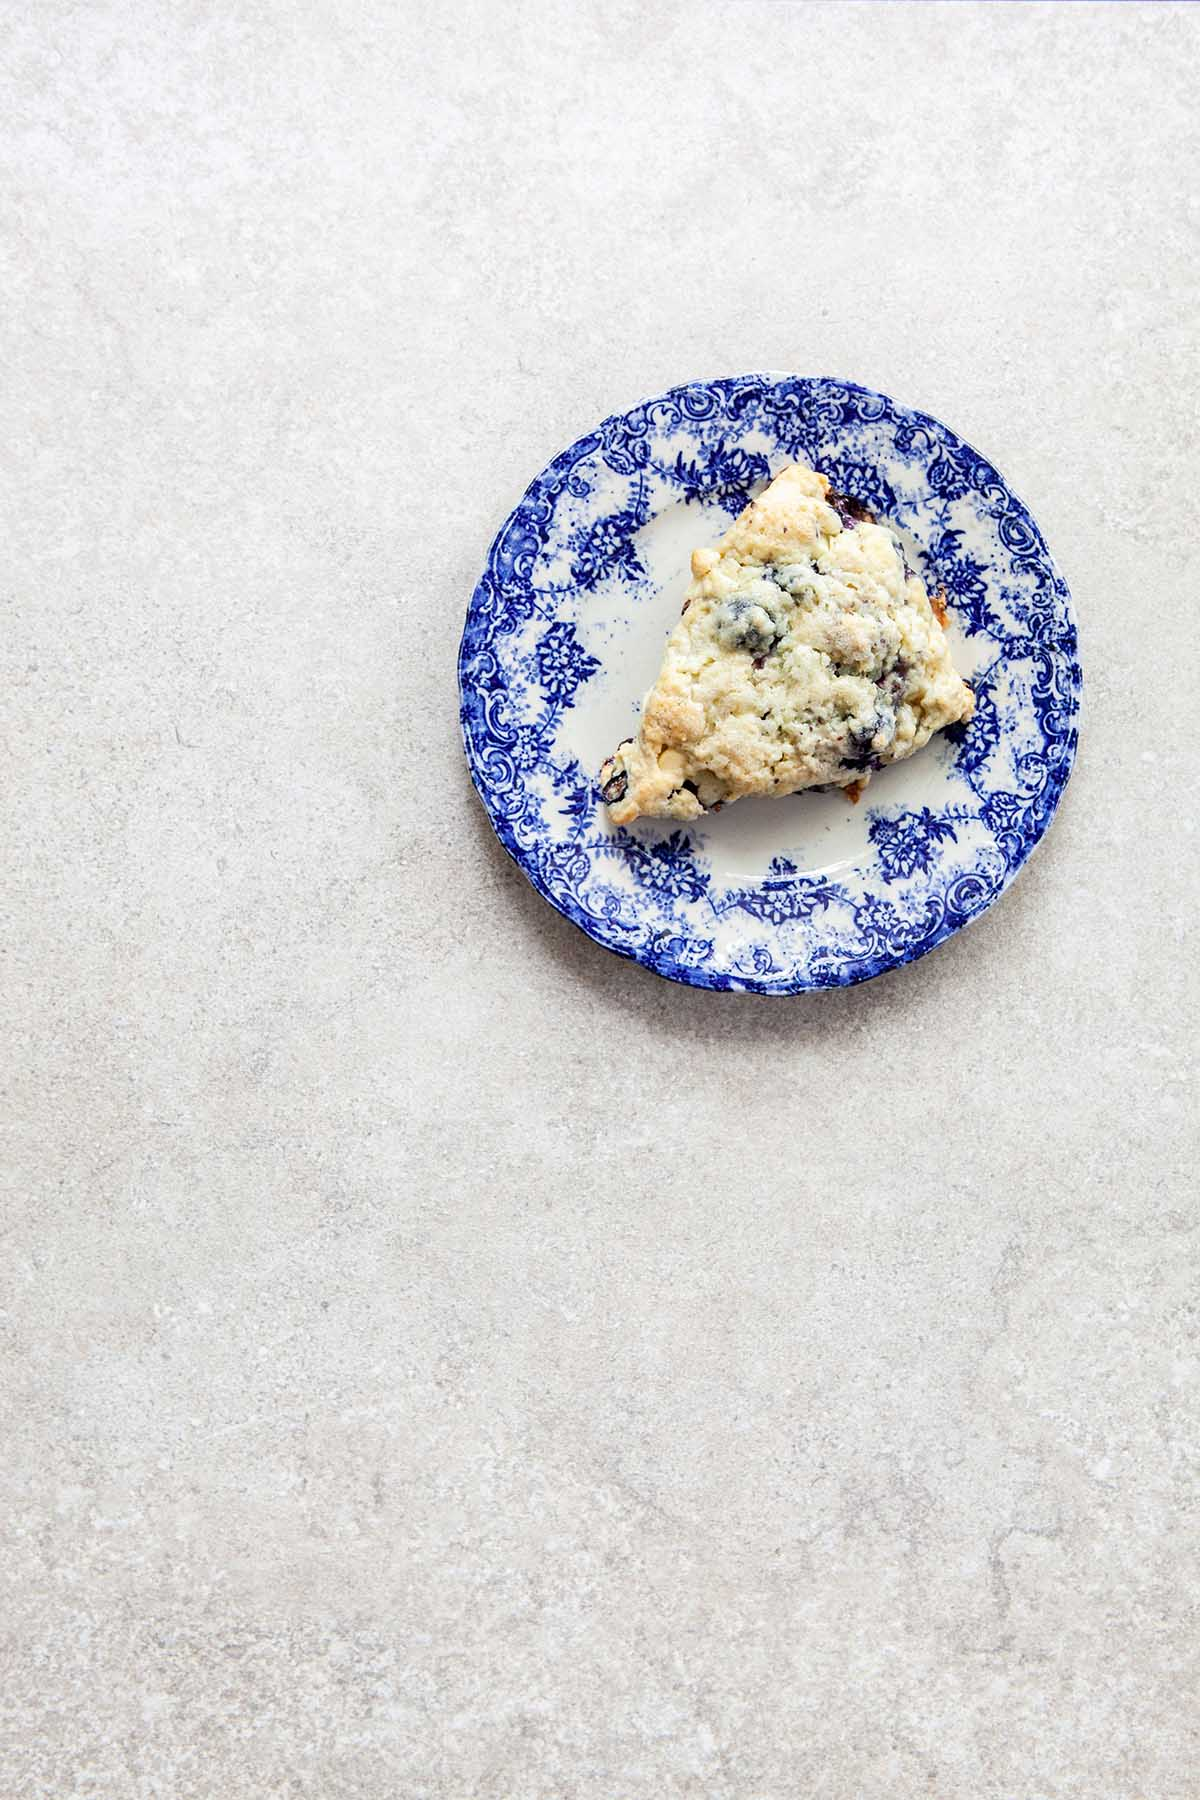 One scone on a blue and white plate on a stone surface.